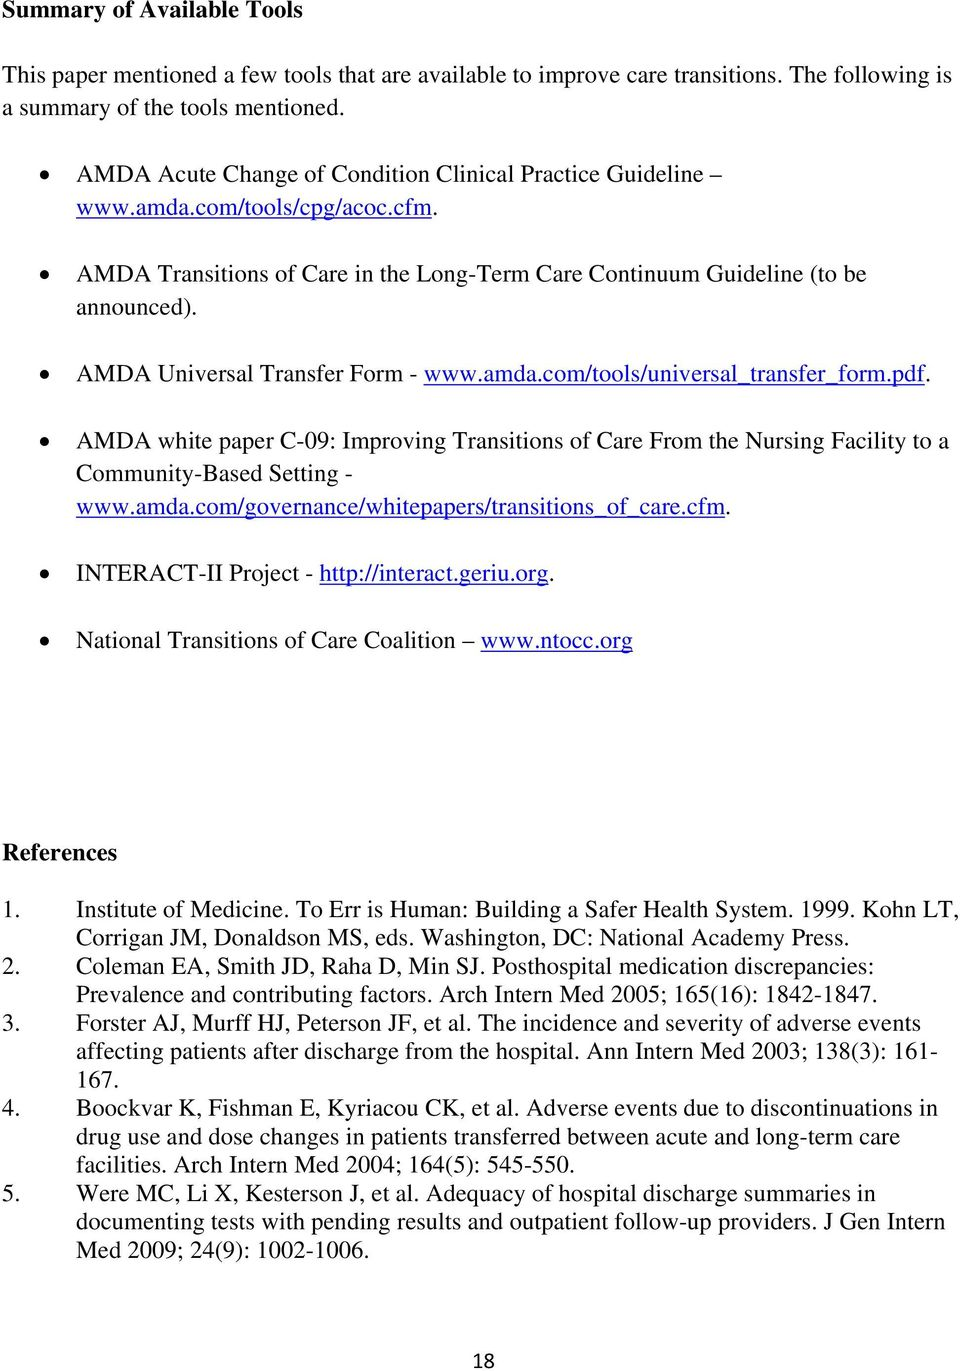 AMDA Universal Transfer Form - www.amda.com/tools/universal_transfer_form.pdf. AMDA white paper C-09: Improving Transitions of Care From the Nursing Facility to a Community-Based Setting - www.amda.com/governance/whitepapers/transitions_of_care.